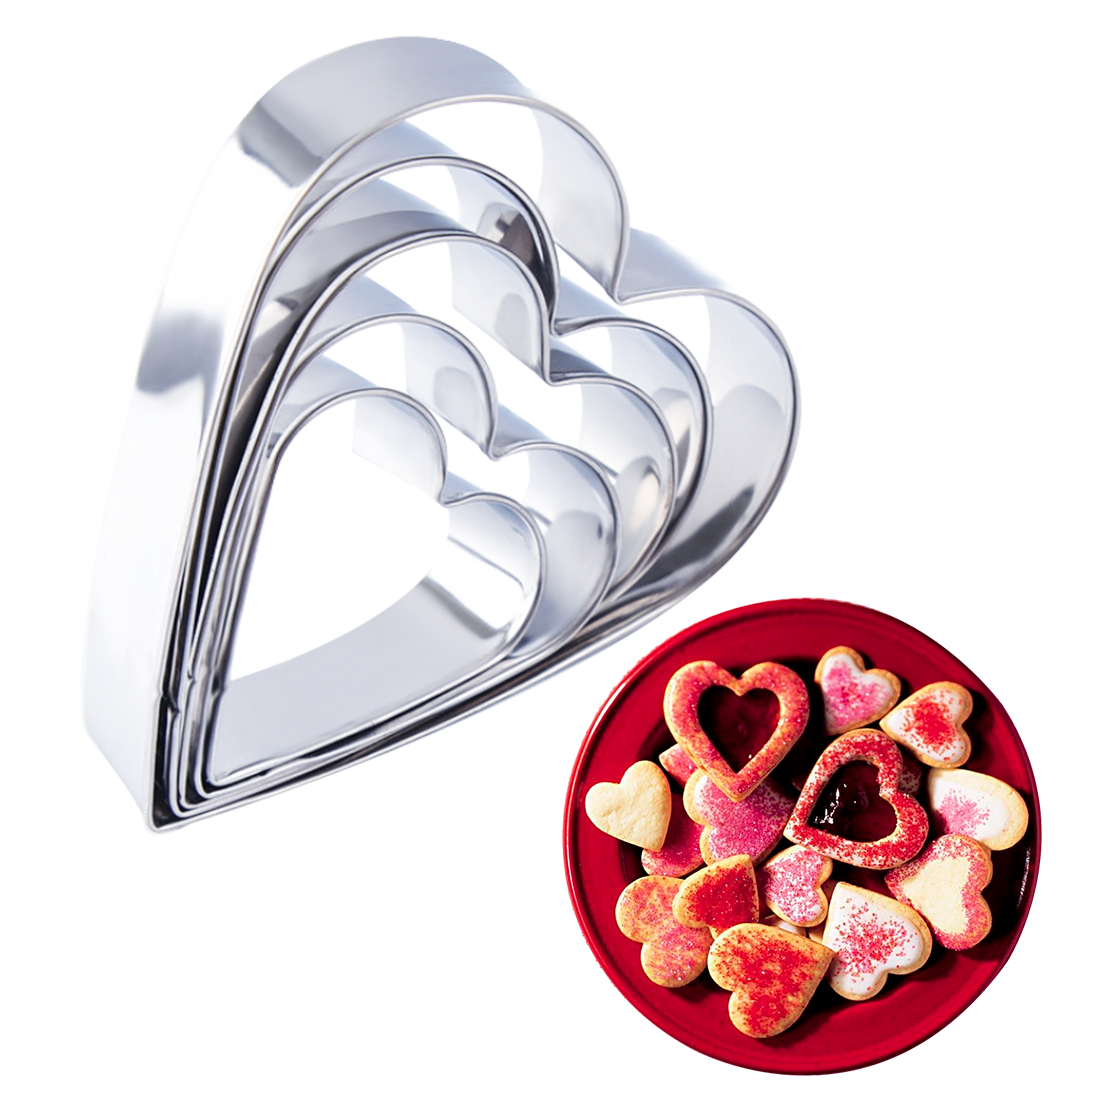 Home & Garden Kitchen,dining & Bar Confident 5pcs/set Stainless Steel Heart Shape Cookies Cutters Mold Fondant Cake Cutter Kitchen Baking Molds Cake Decorating Tools